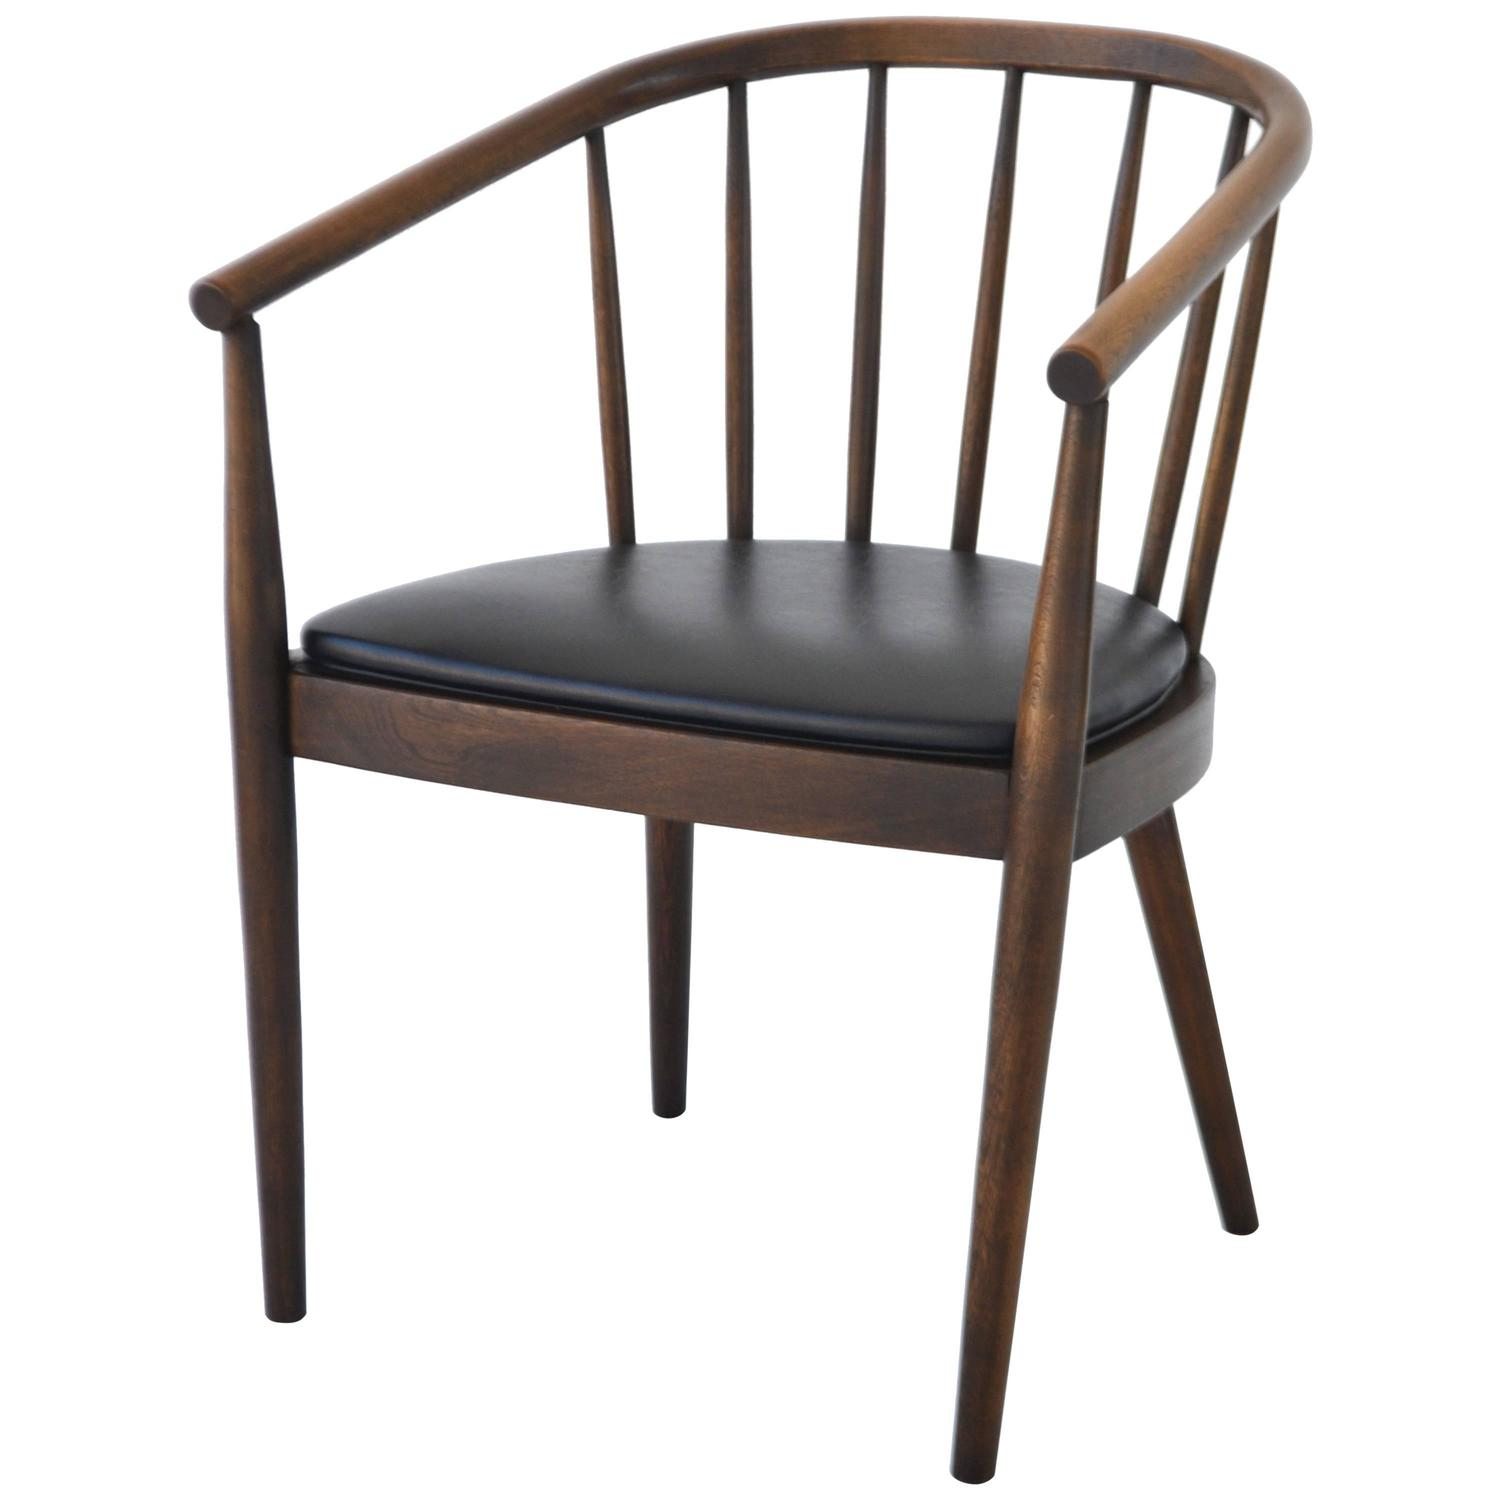 mid century bentwood side chair by lawrence peabody for richardson